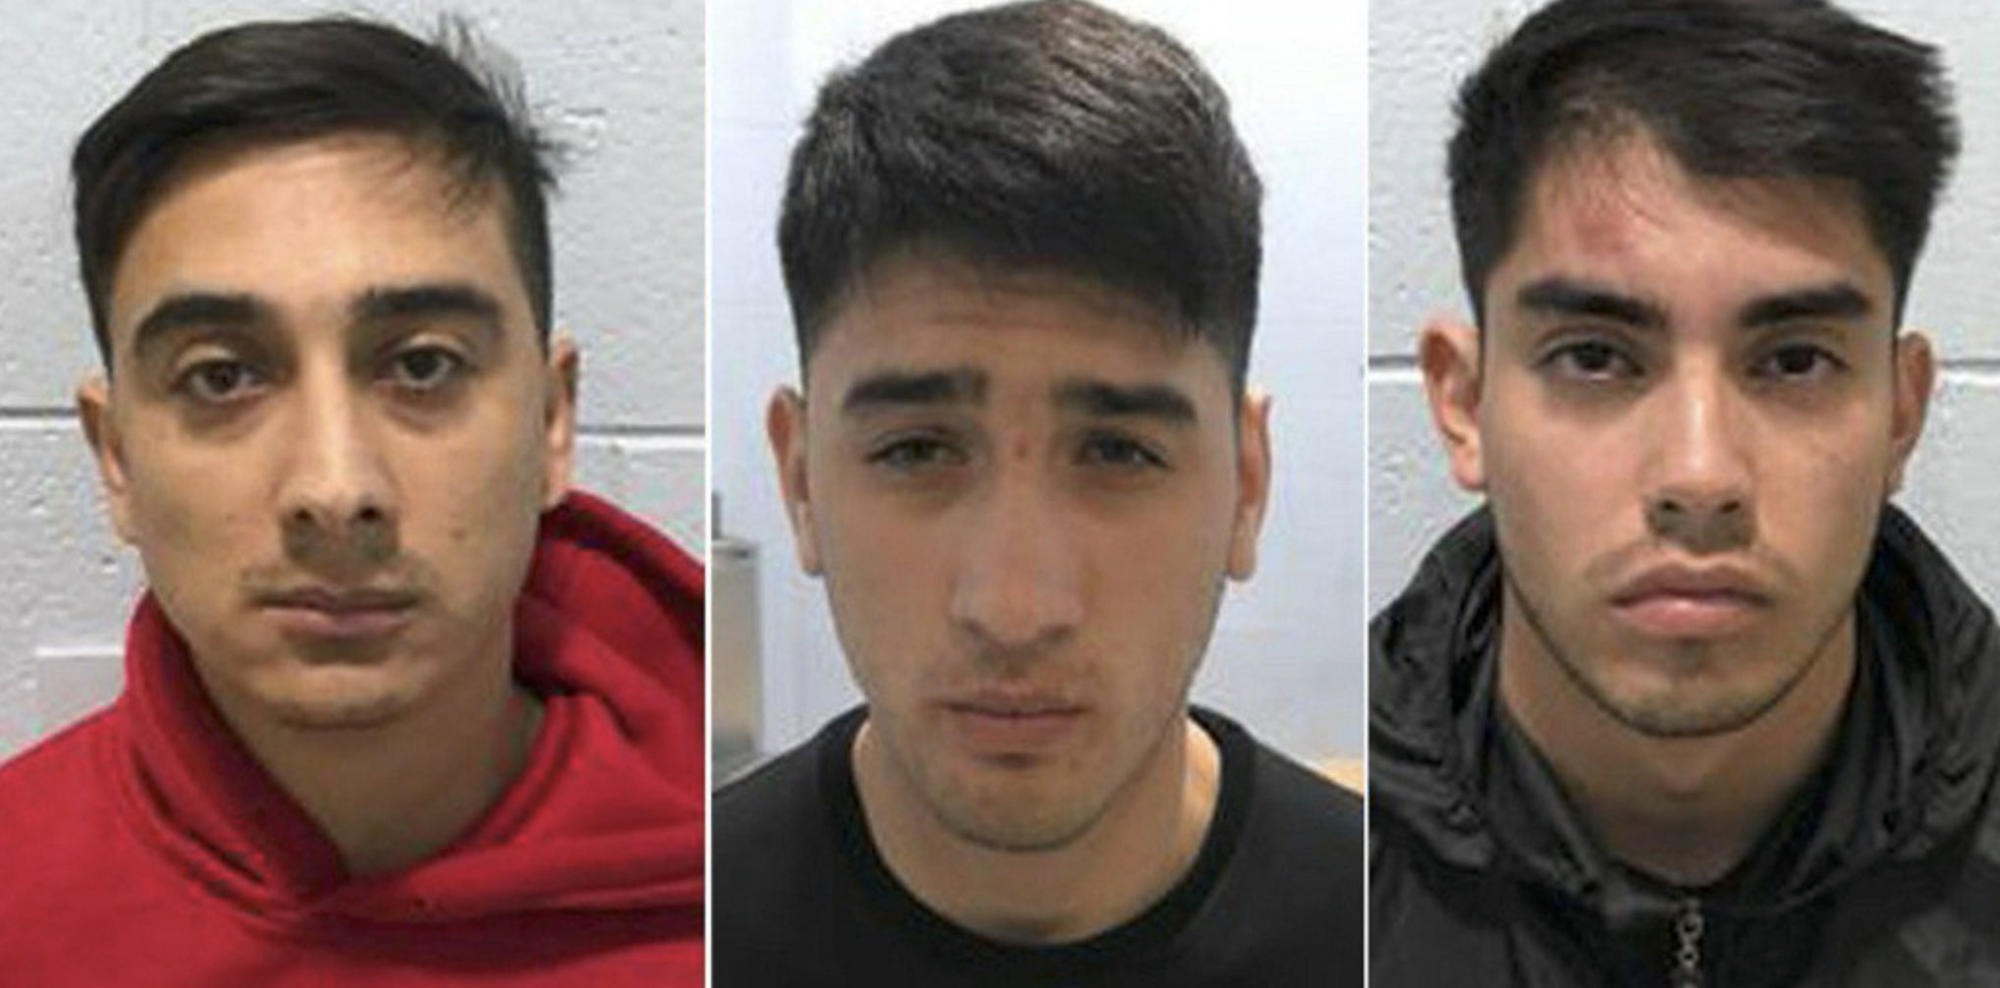 Dozens of Chilean 'tourists' tied to robbery spree in Southern California, police say